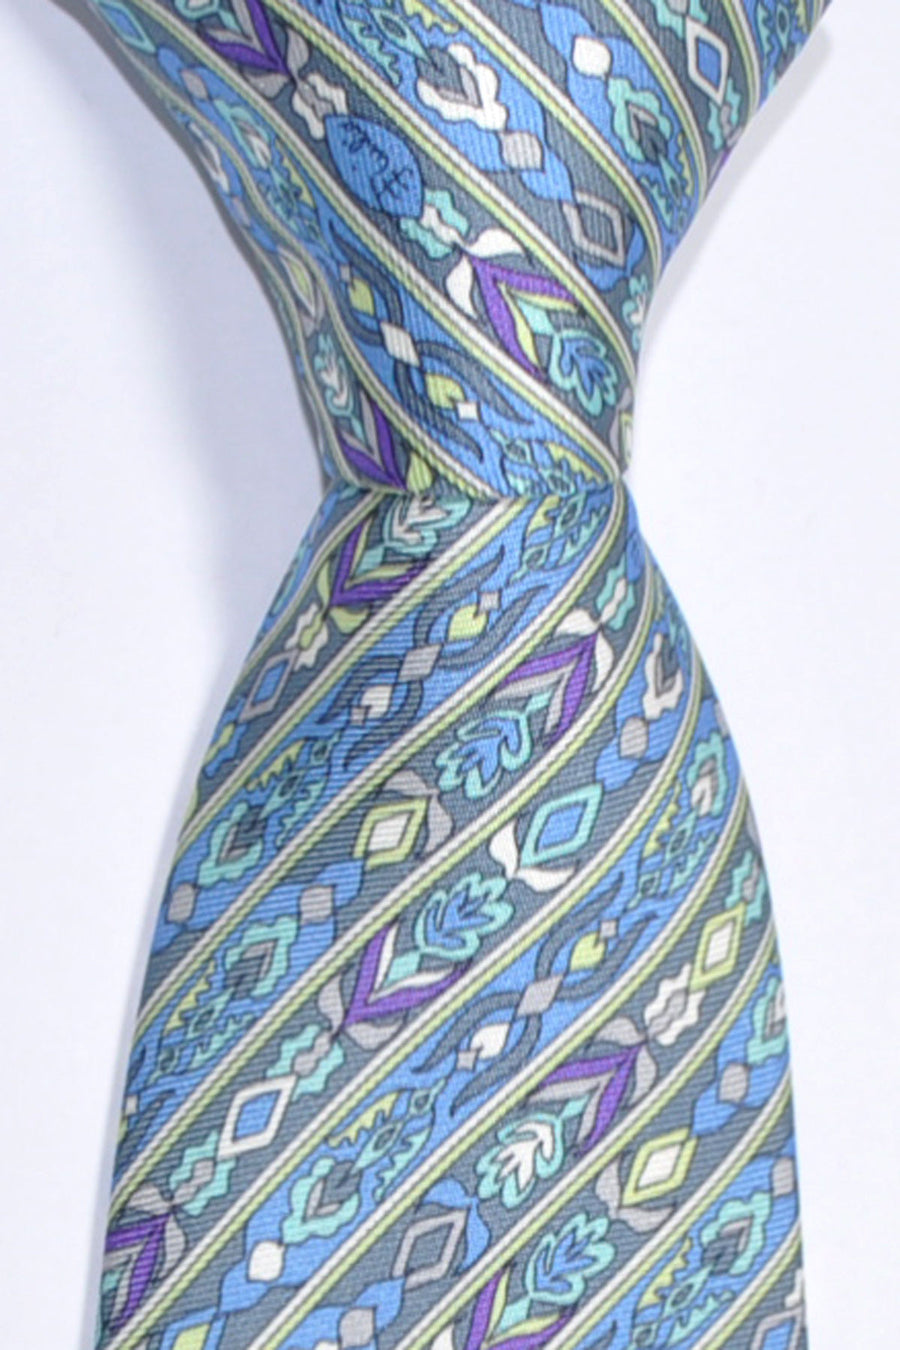 Emilio Pucci Tie Gray Blue Mint Purple Stripes Signature Print